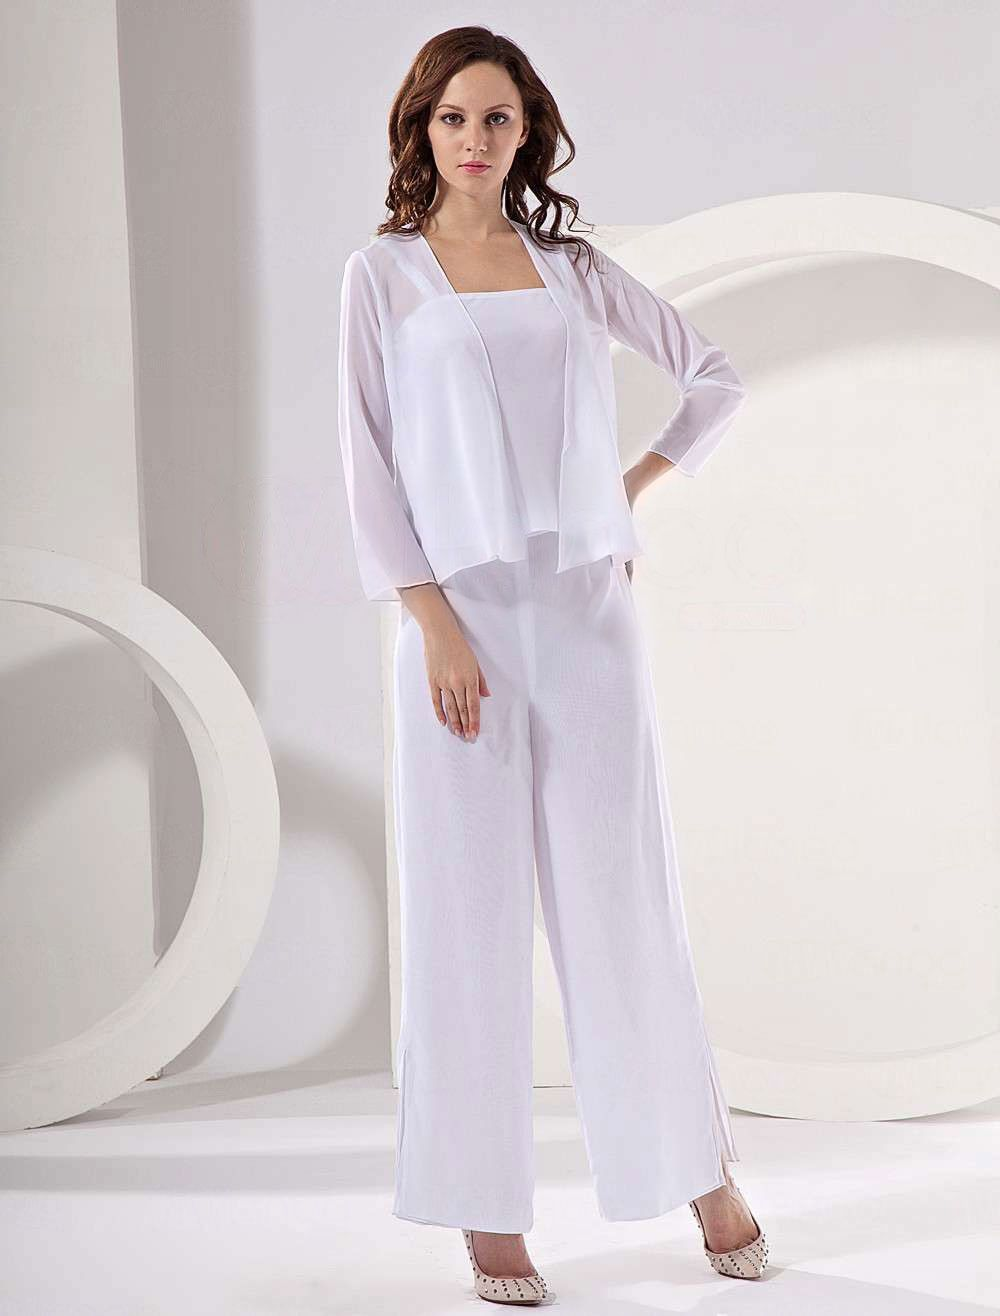 Elegant champagne chiffon mother of the bride pant suits | Apparel ...